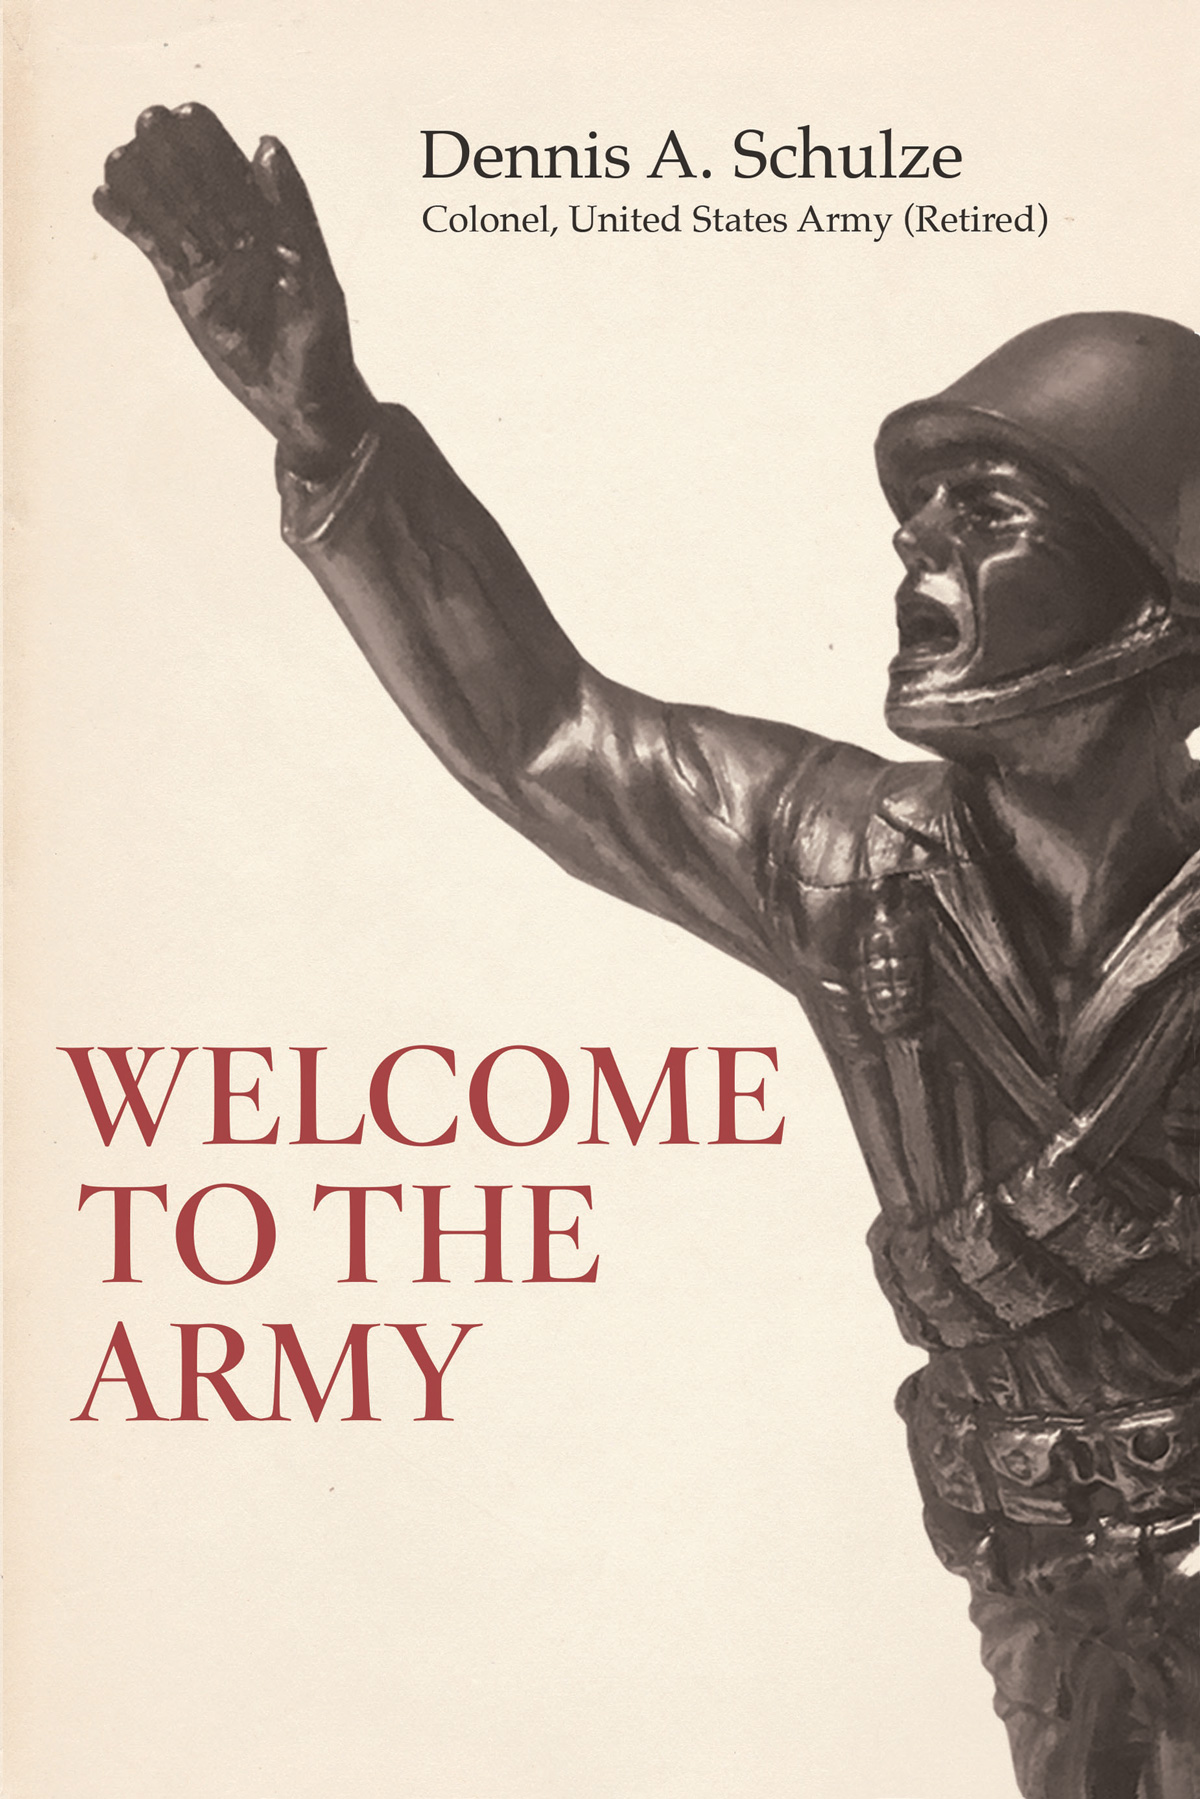 Welcome to the Army